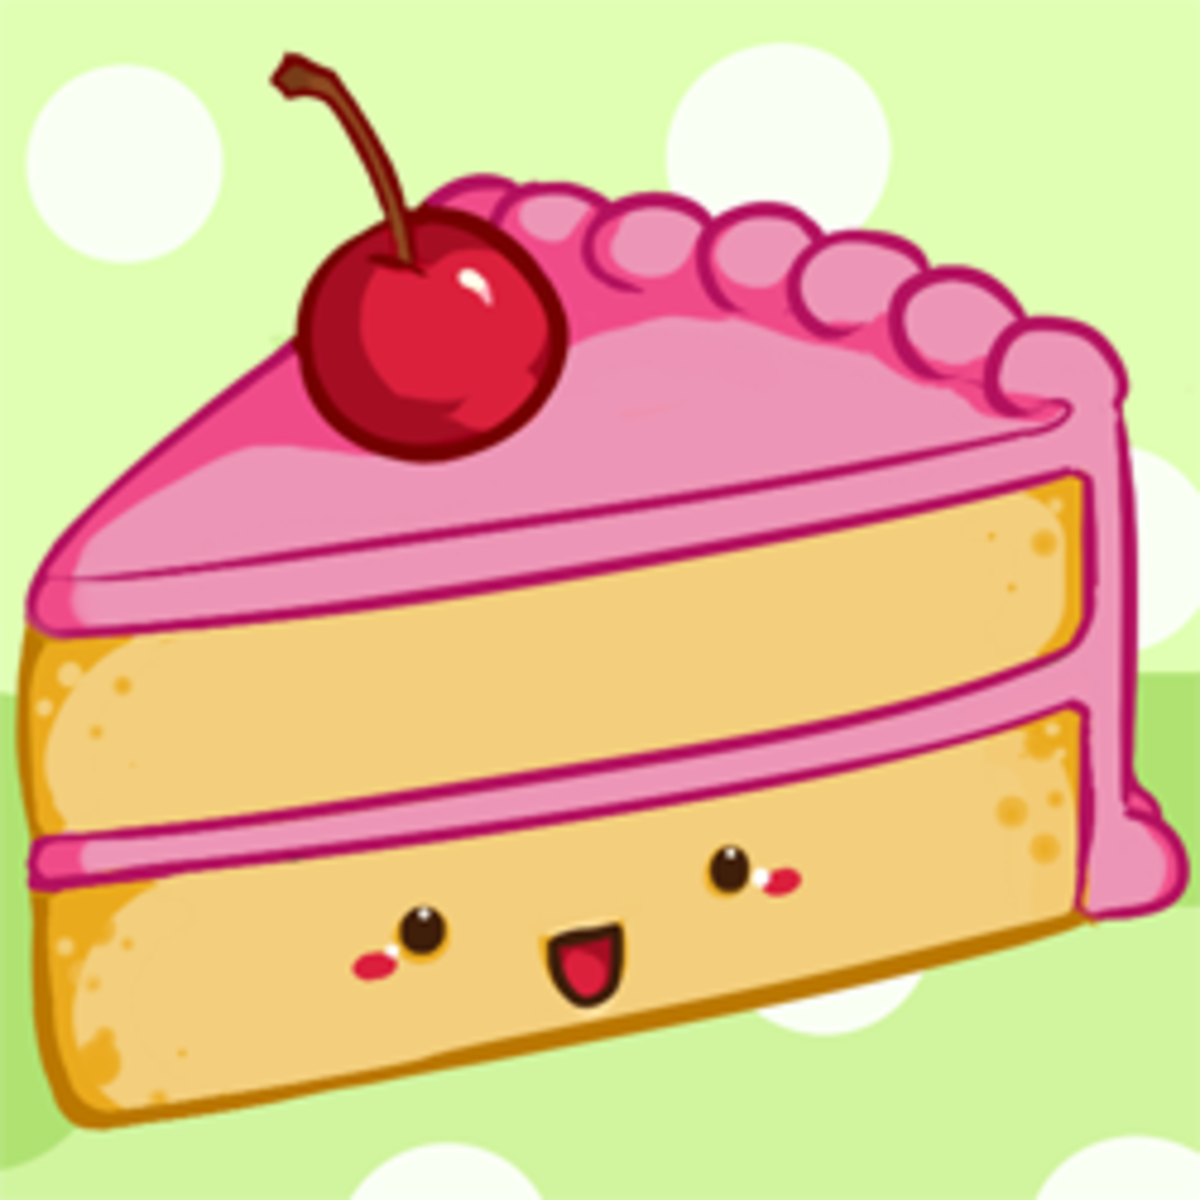 How to Draw a Kawaii (Cute) Cake Slice